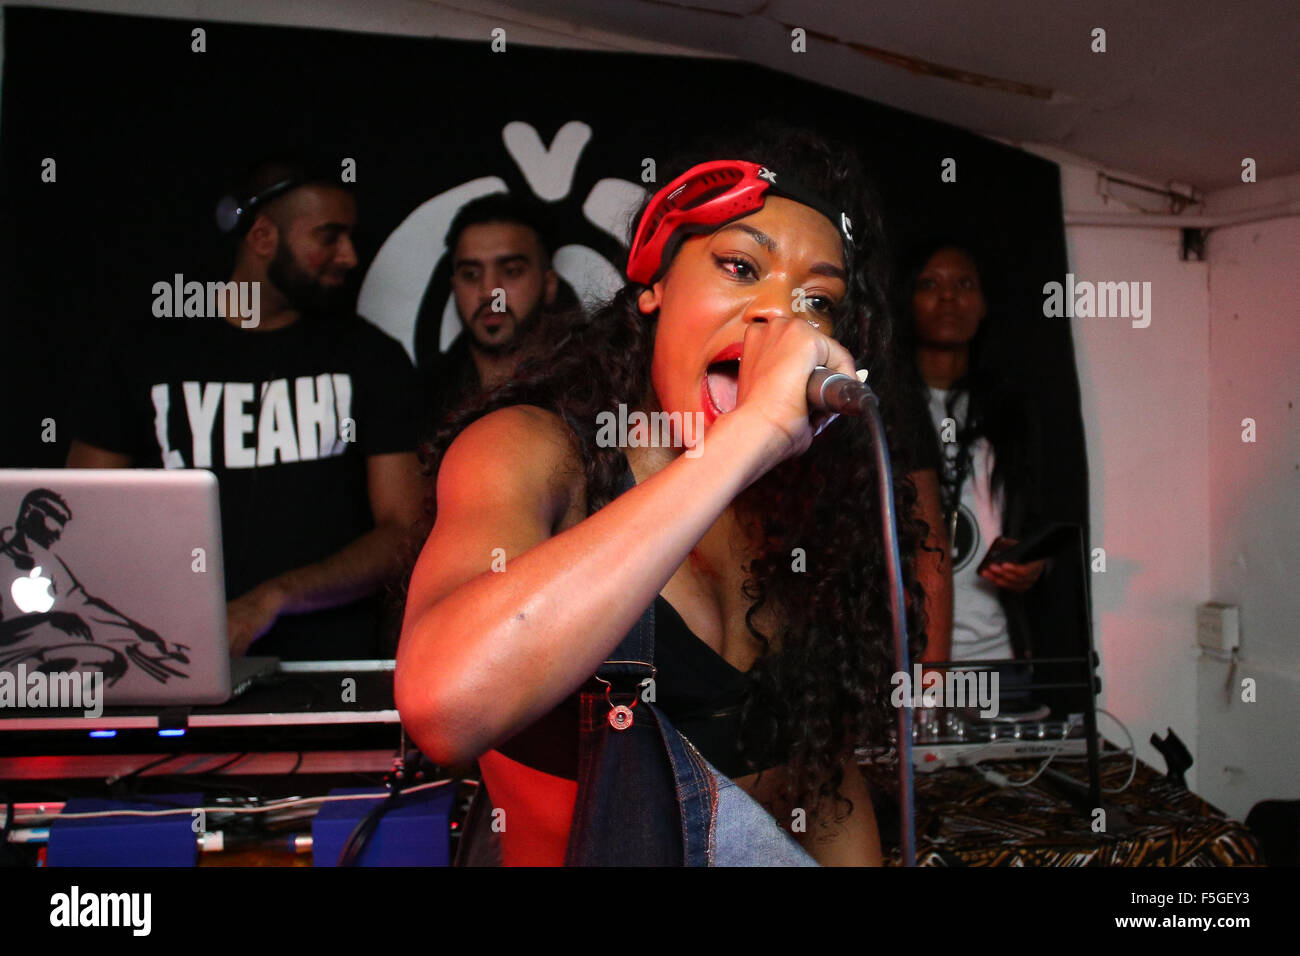 Lady Leshurr performs at Chunk in Leeds, West Yorkshire, UK. - Stock Image